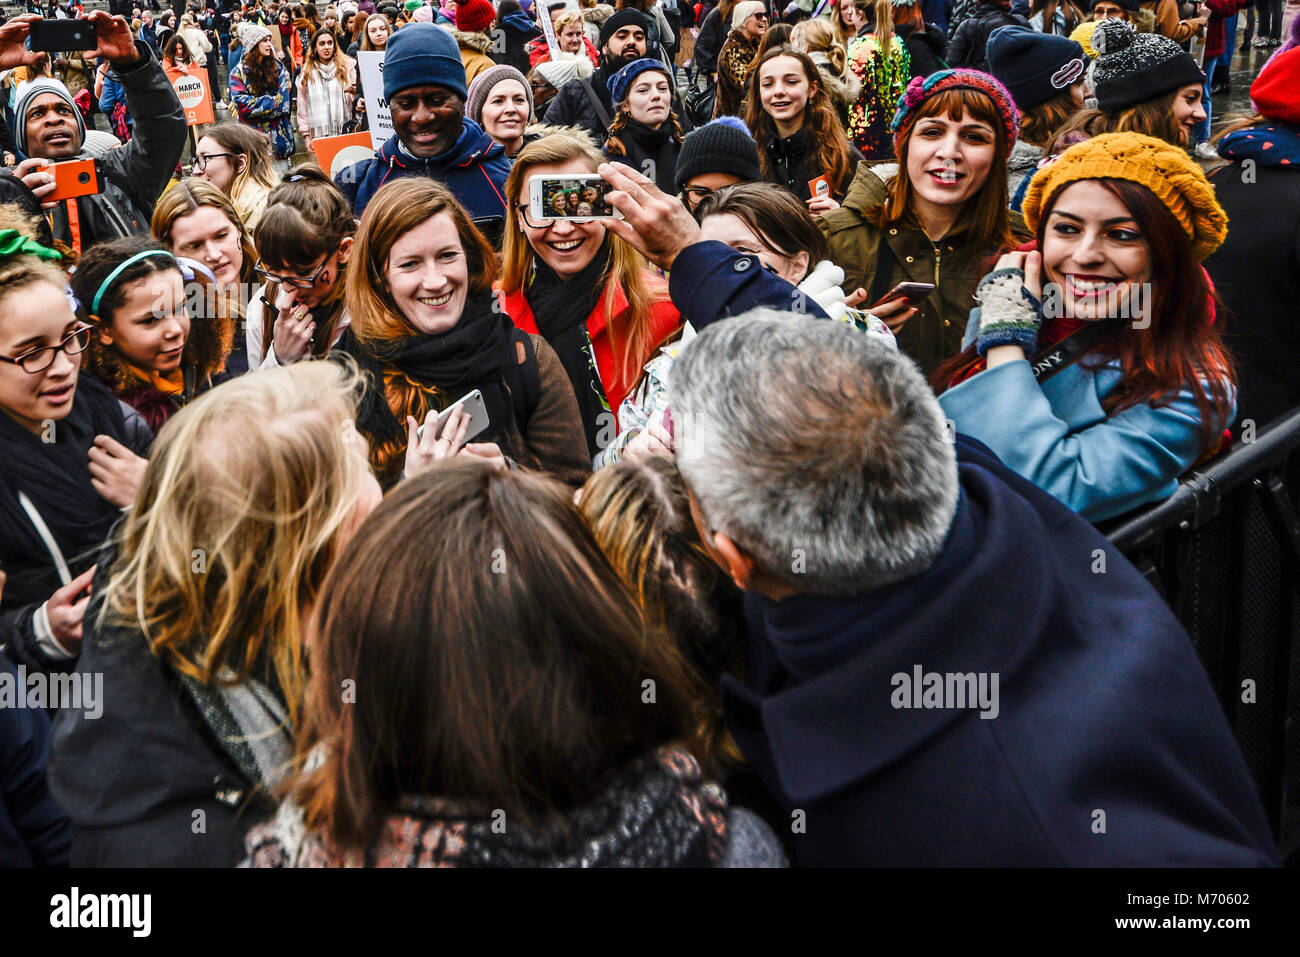 sadiq-khan-mayor-of-london-meeting-the-public-after-the-march-4-women-M70602.jpg